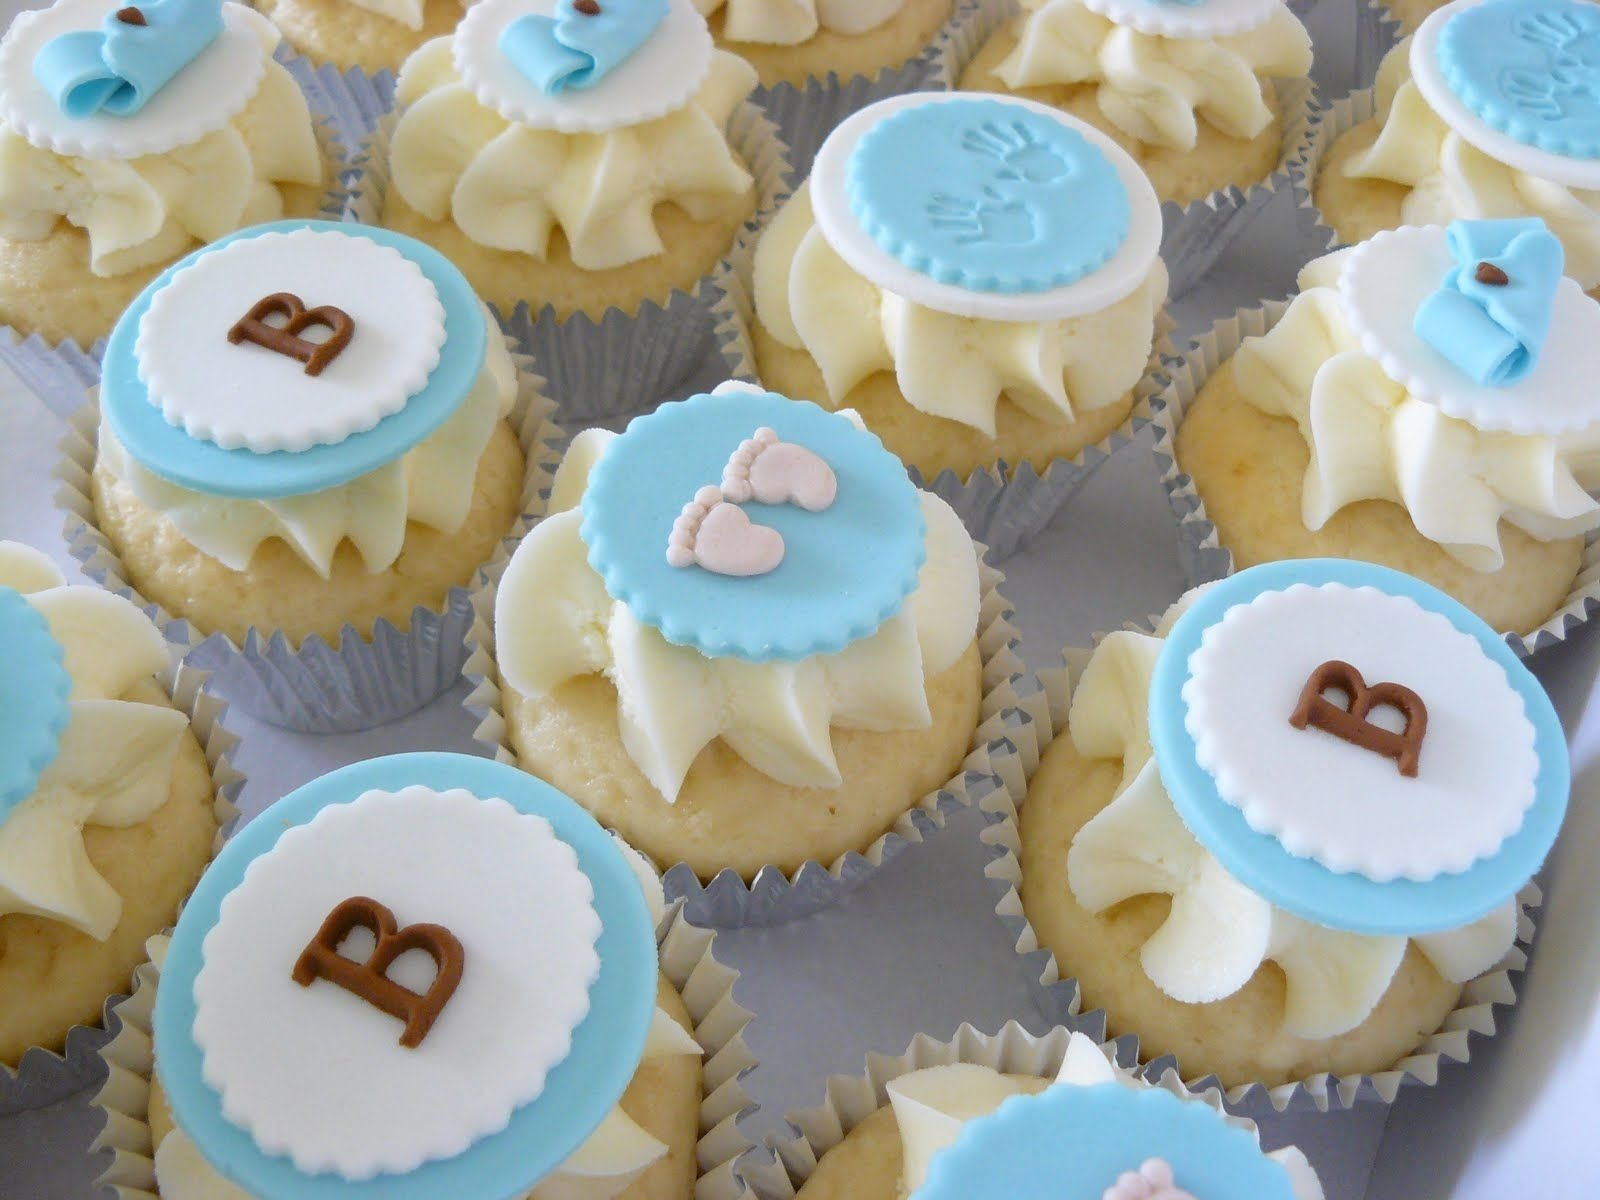 10 Fantastic Boy Baby Shower Cupcake Ideas